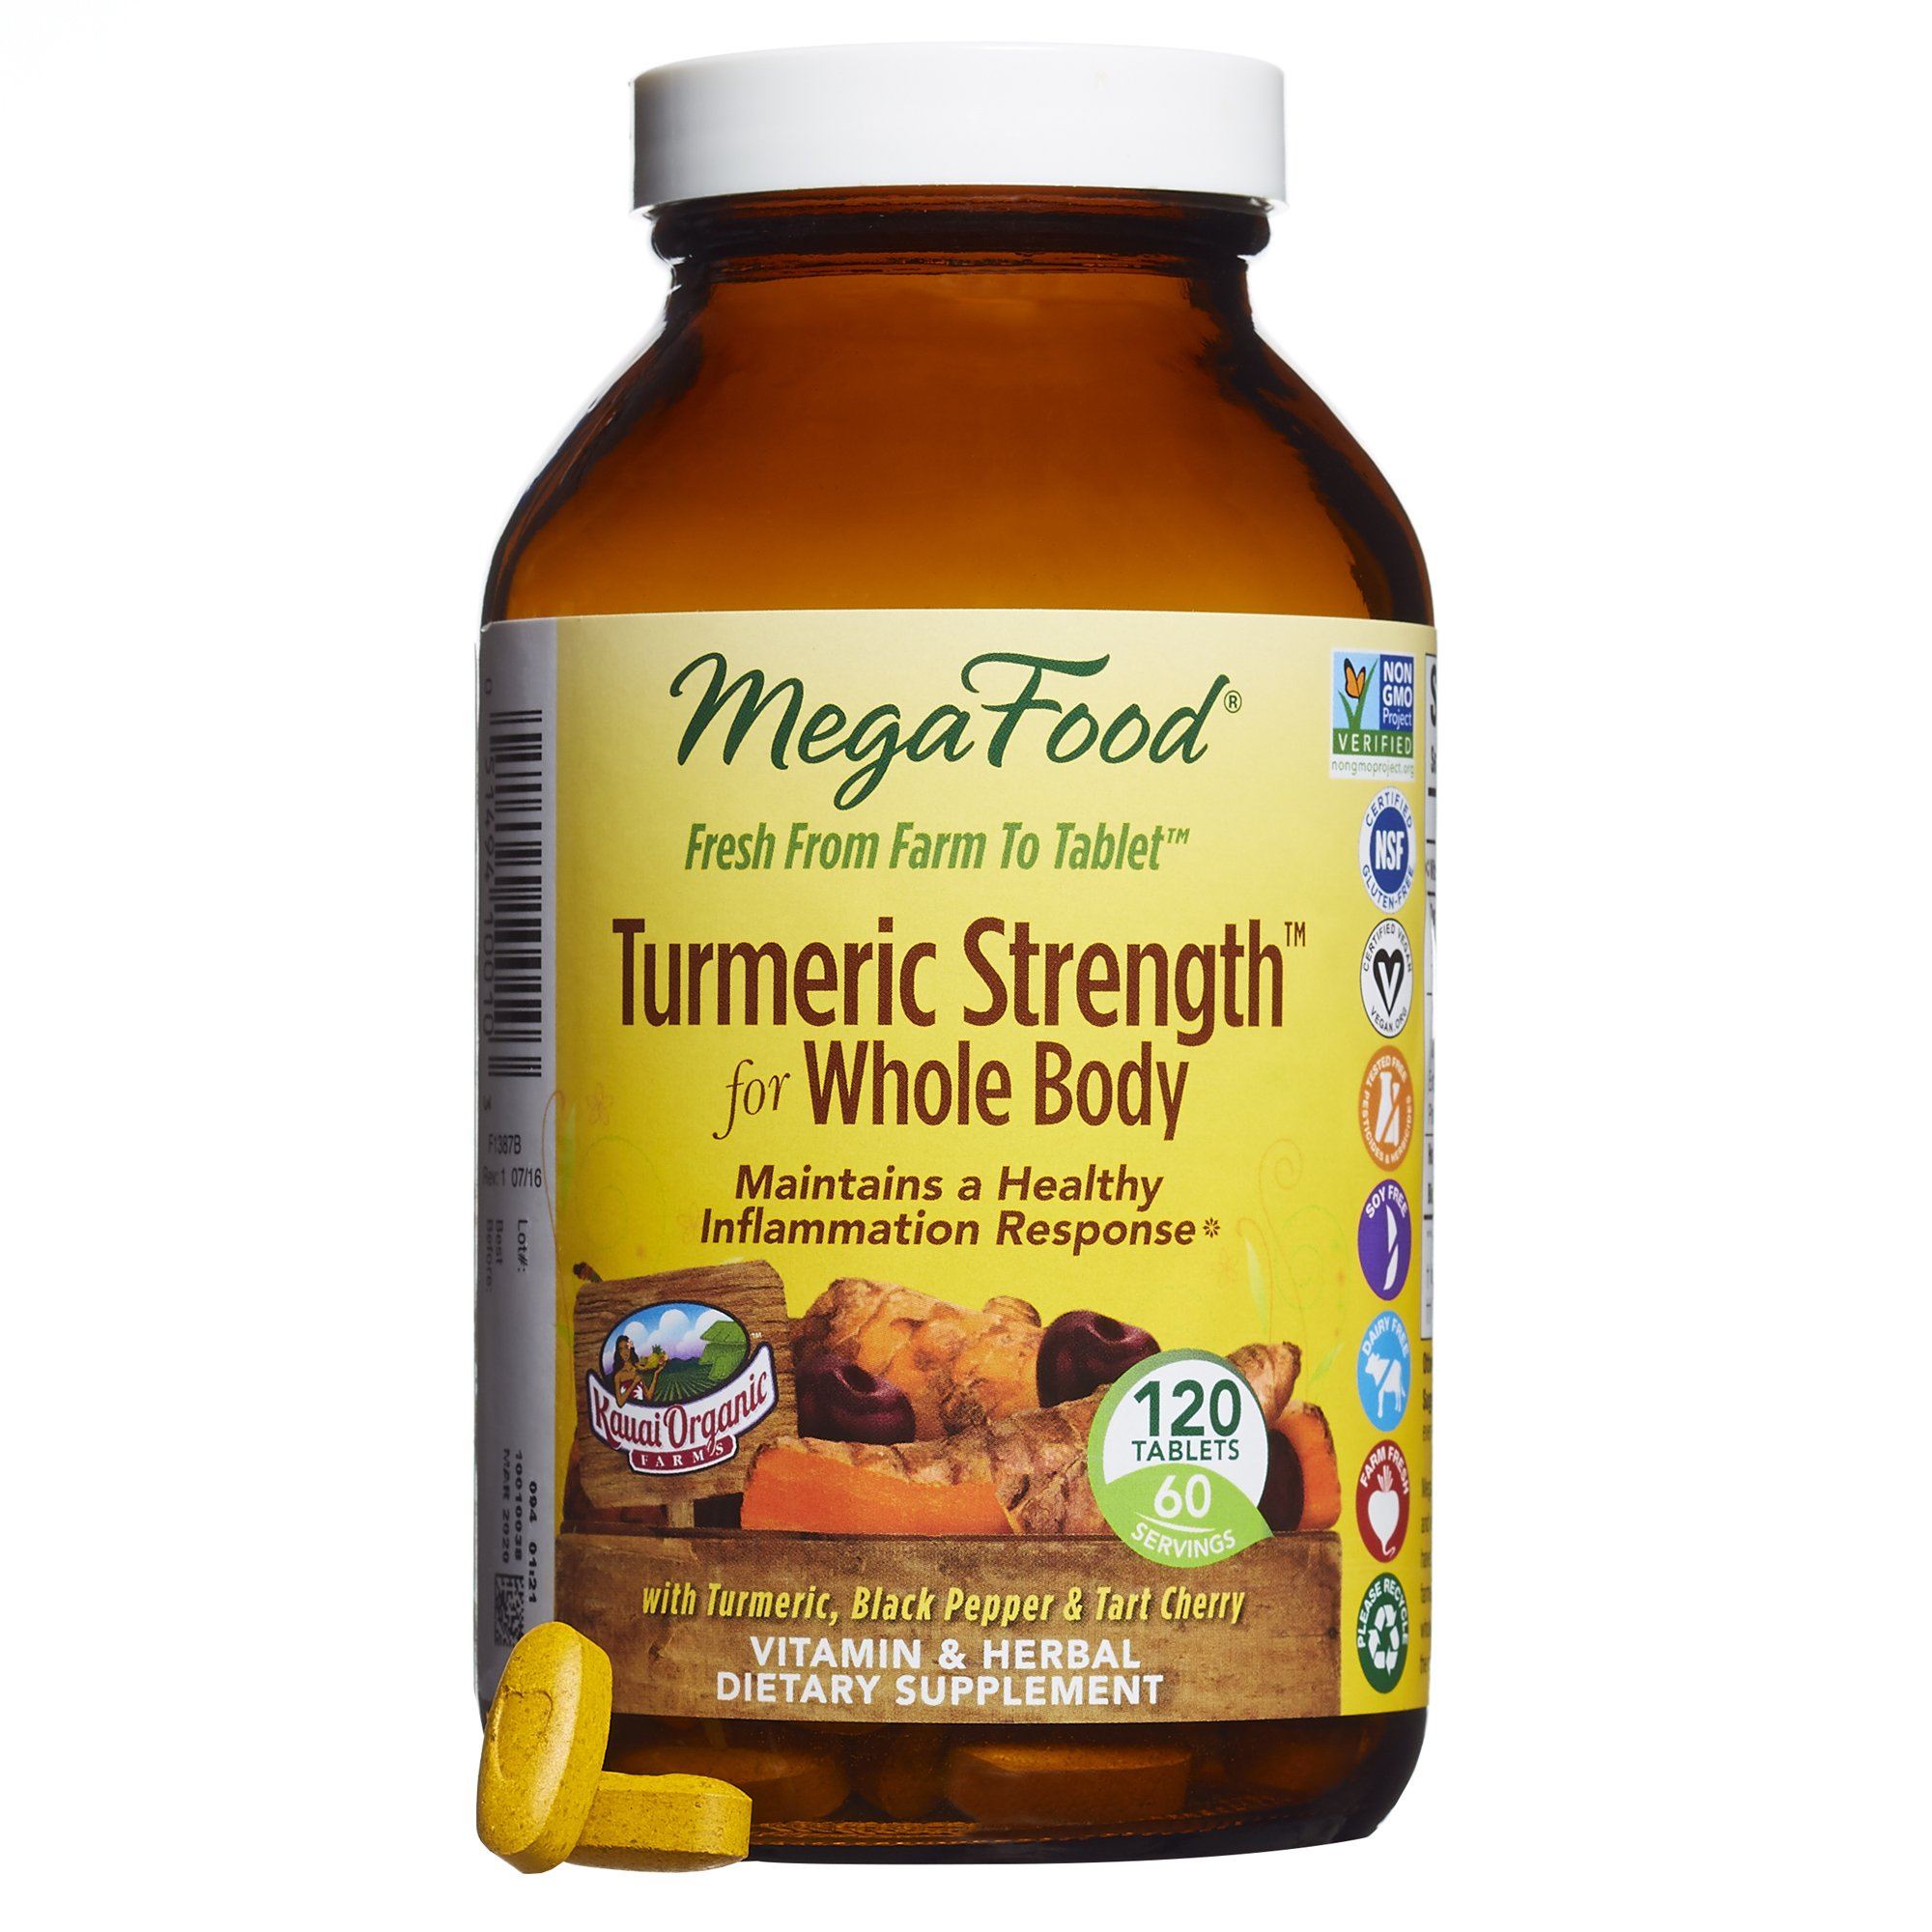 MegaFood - Turmeric Strength for Whole Body, Curcumin Support for Healthy Inflammation, 120 Tablets (FFP)